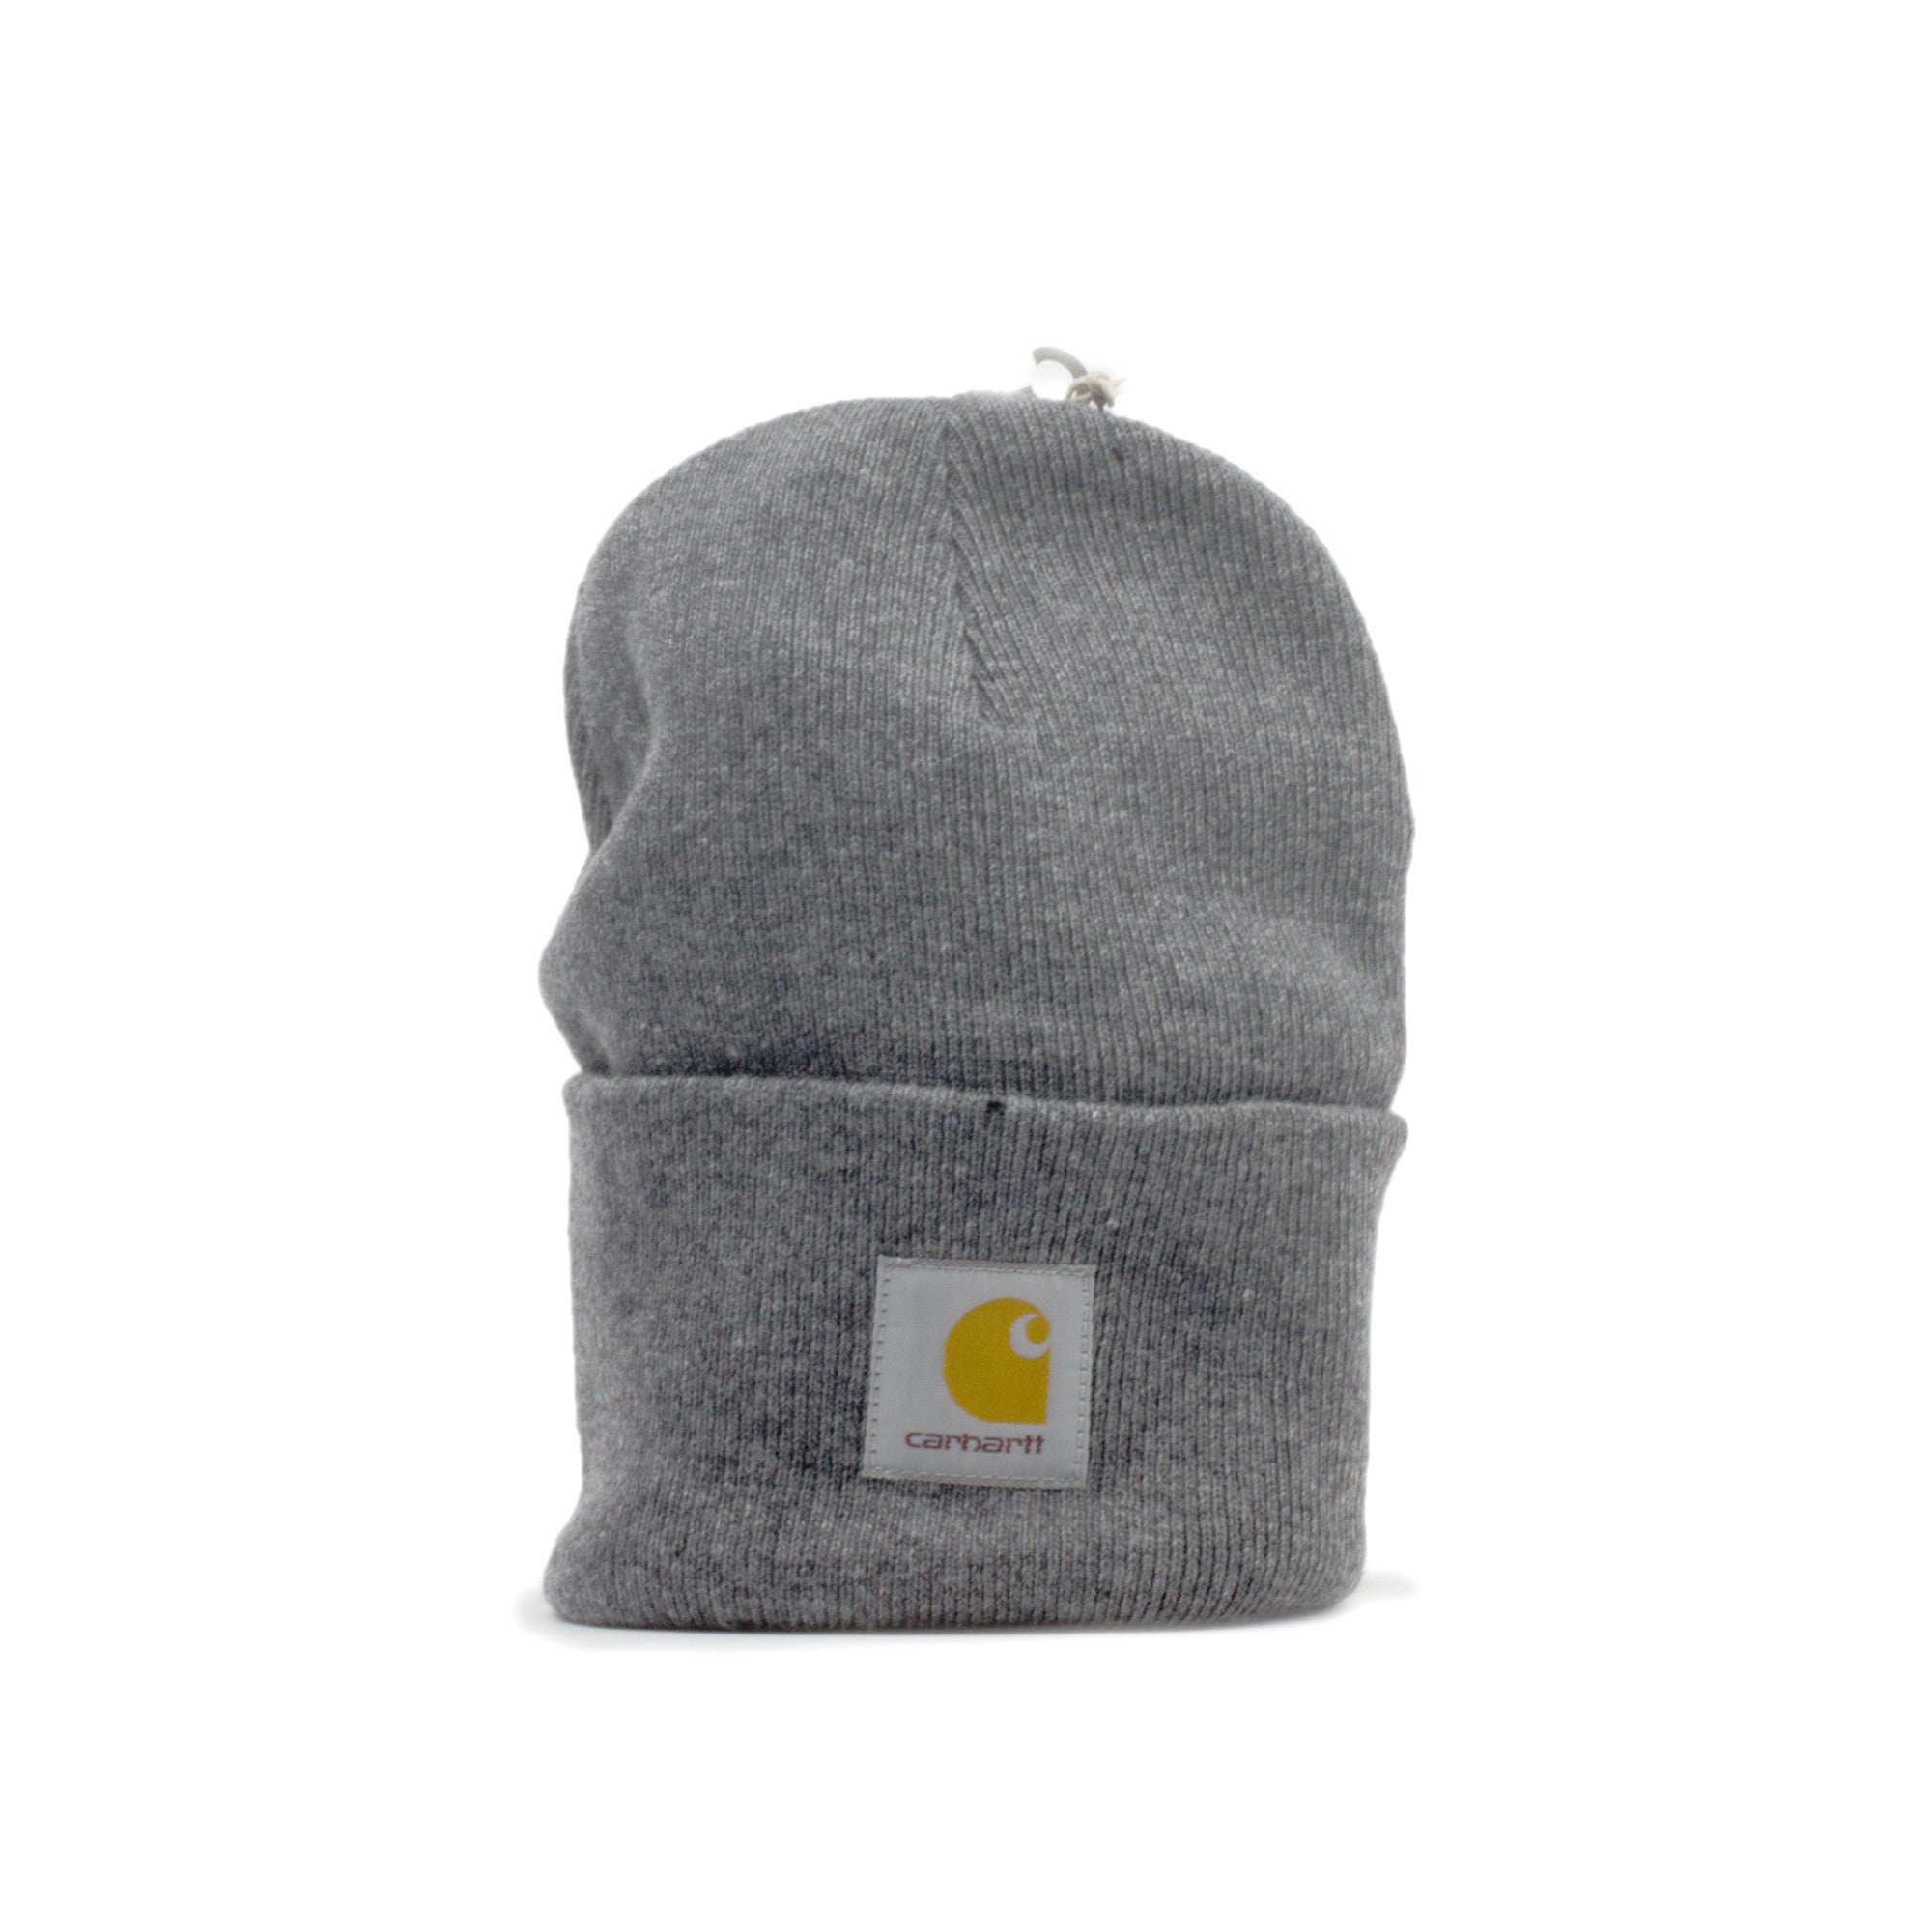 Acrylic Watch Hat Grey